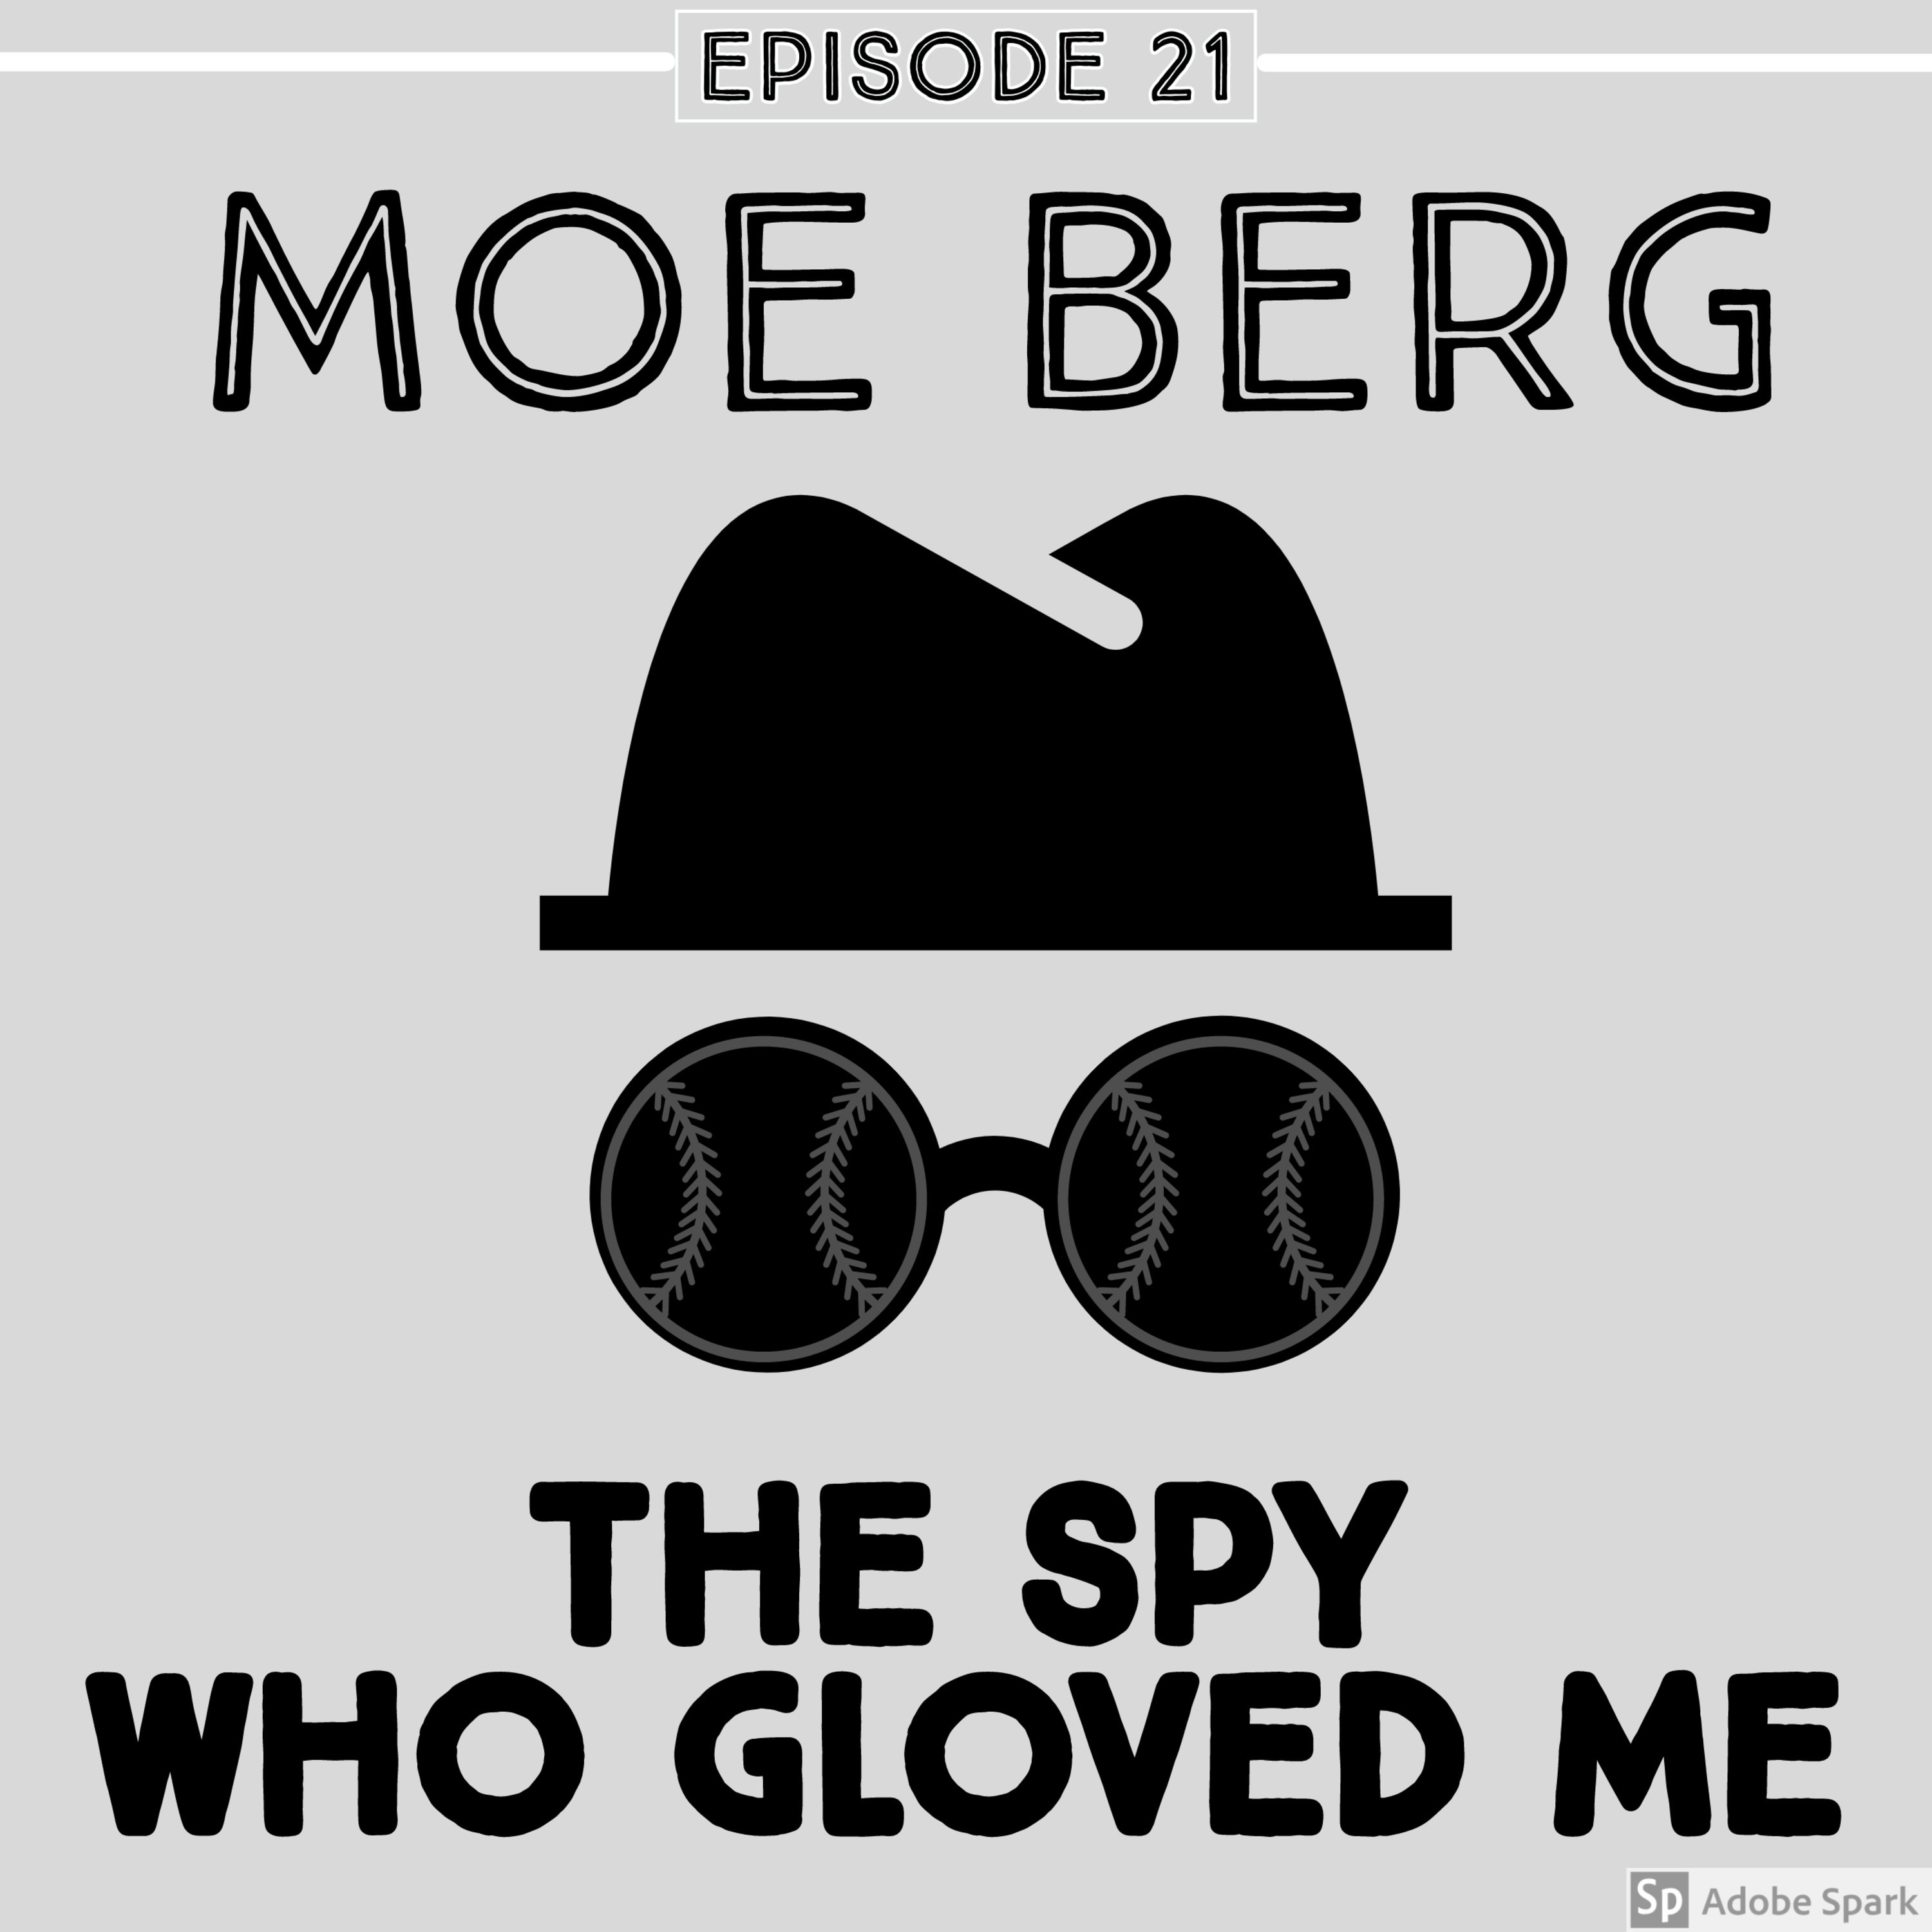 Episode 21: Moe Berg: The Spy Who Gloved Me